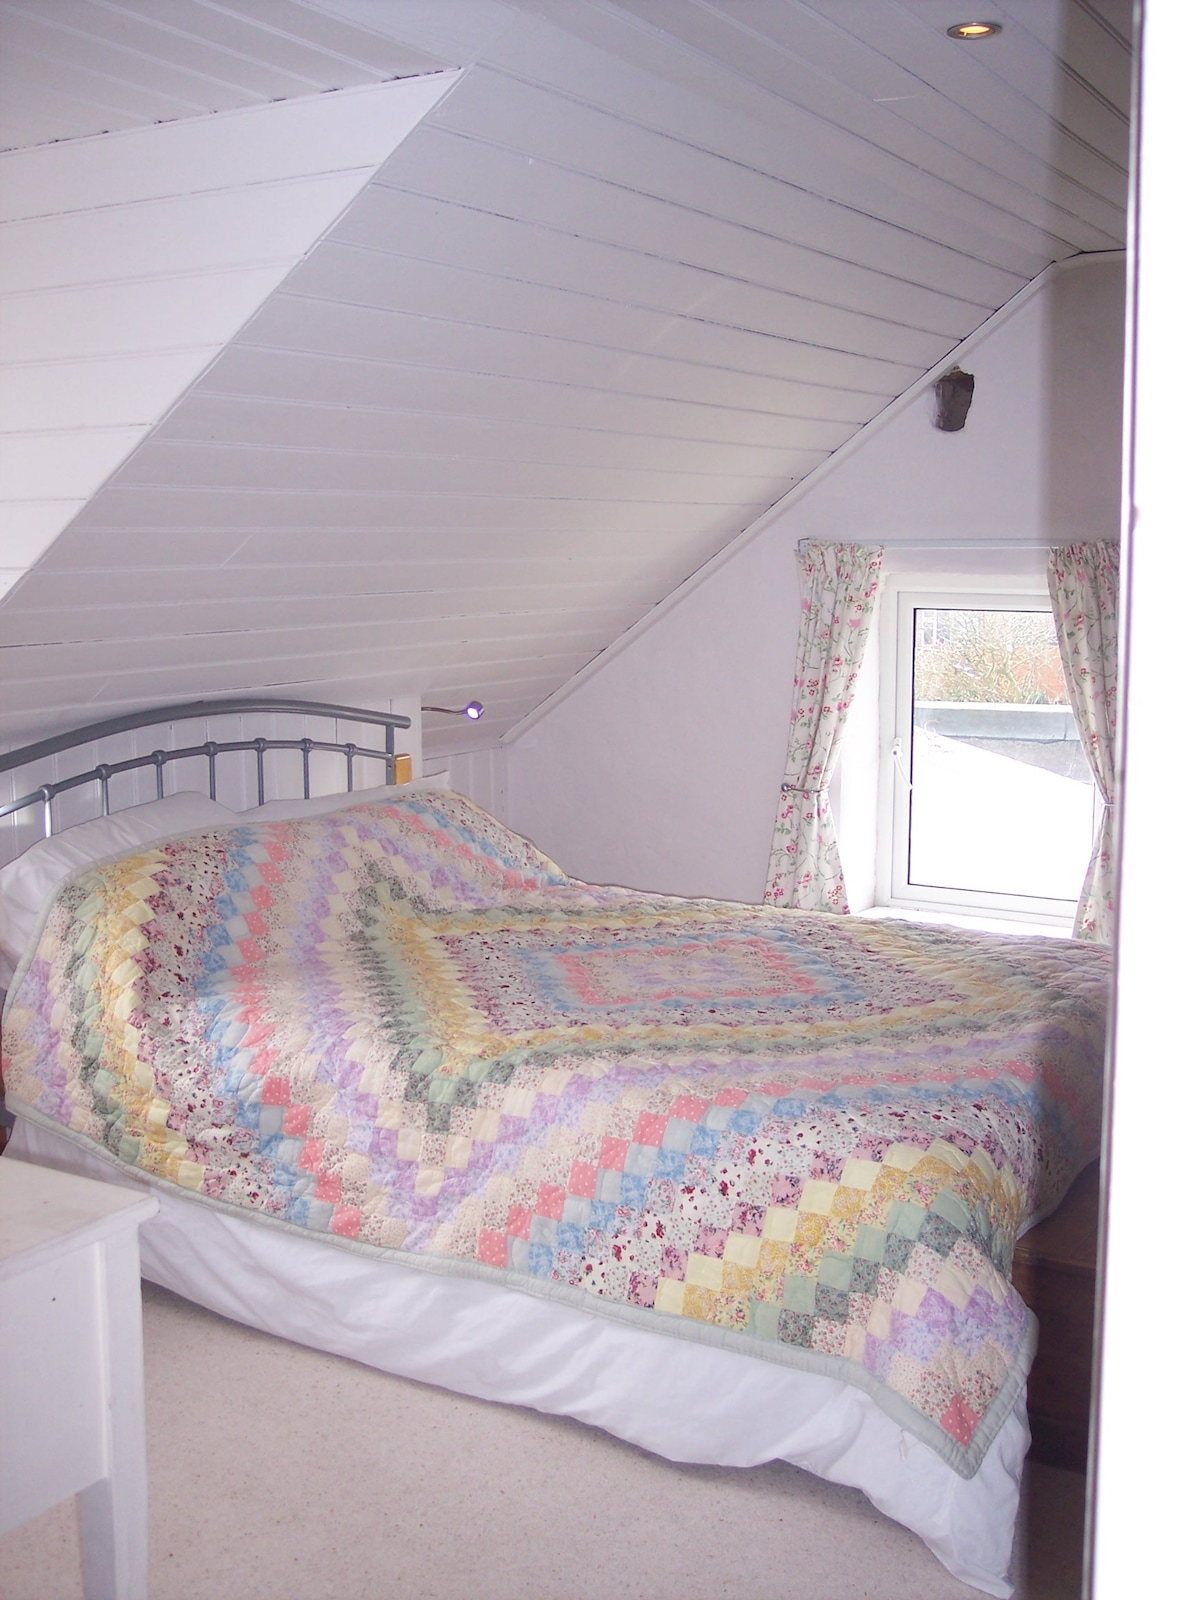 Comfy bed and a glimpse of the sea.